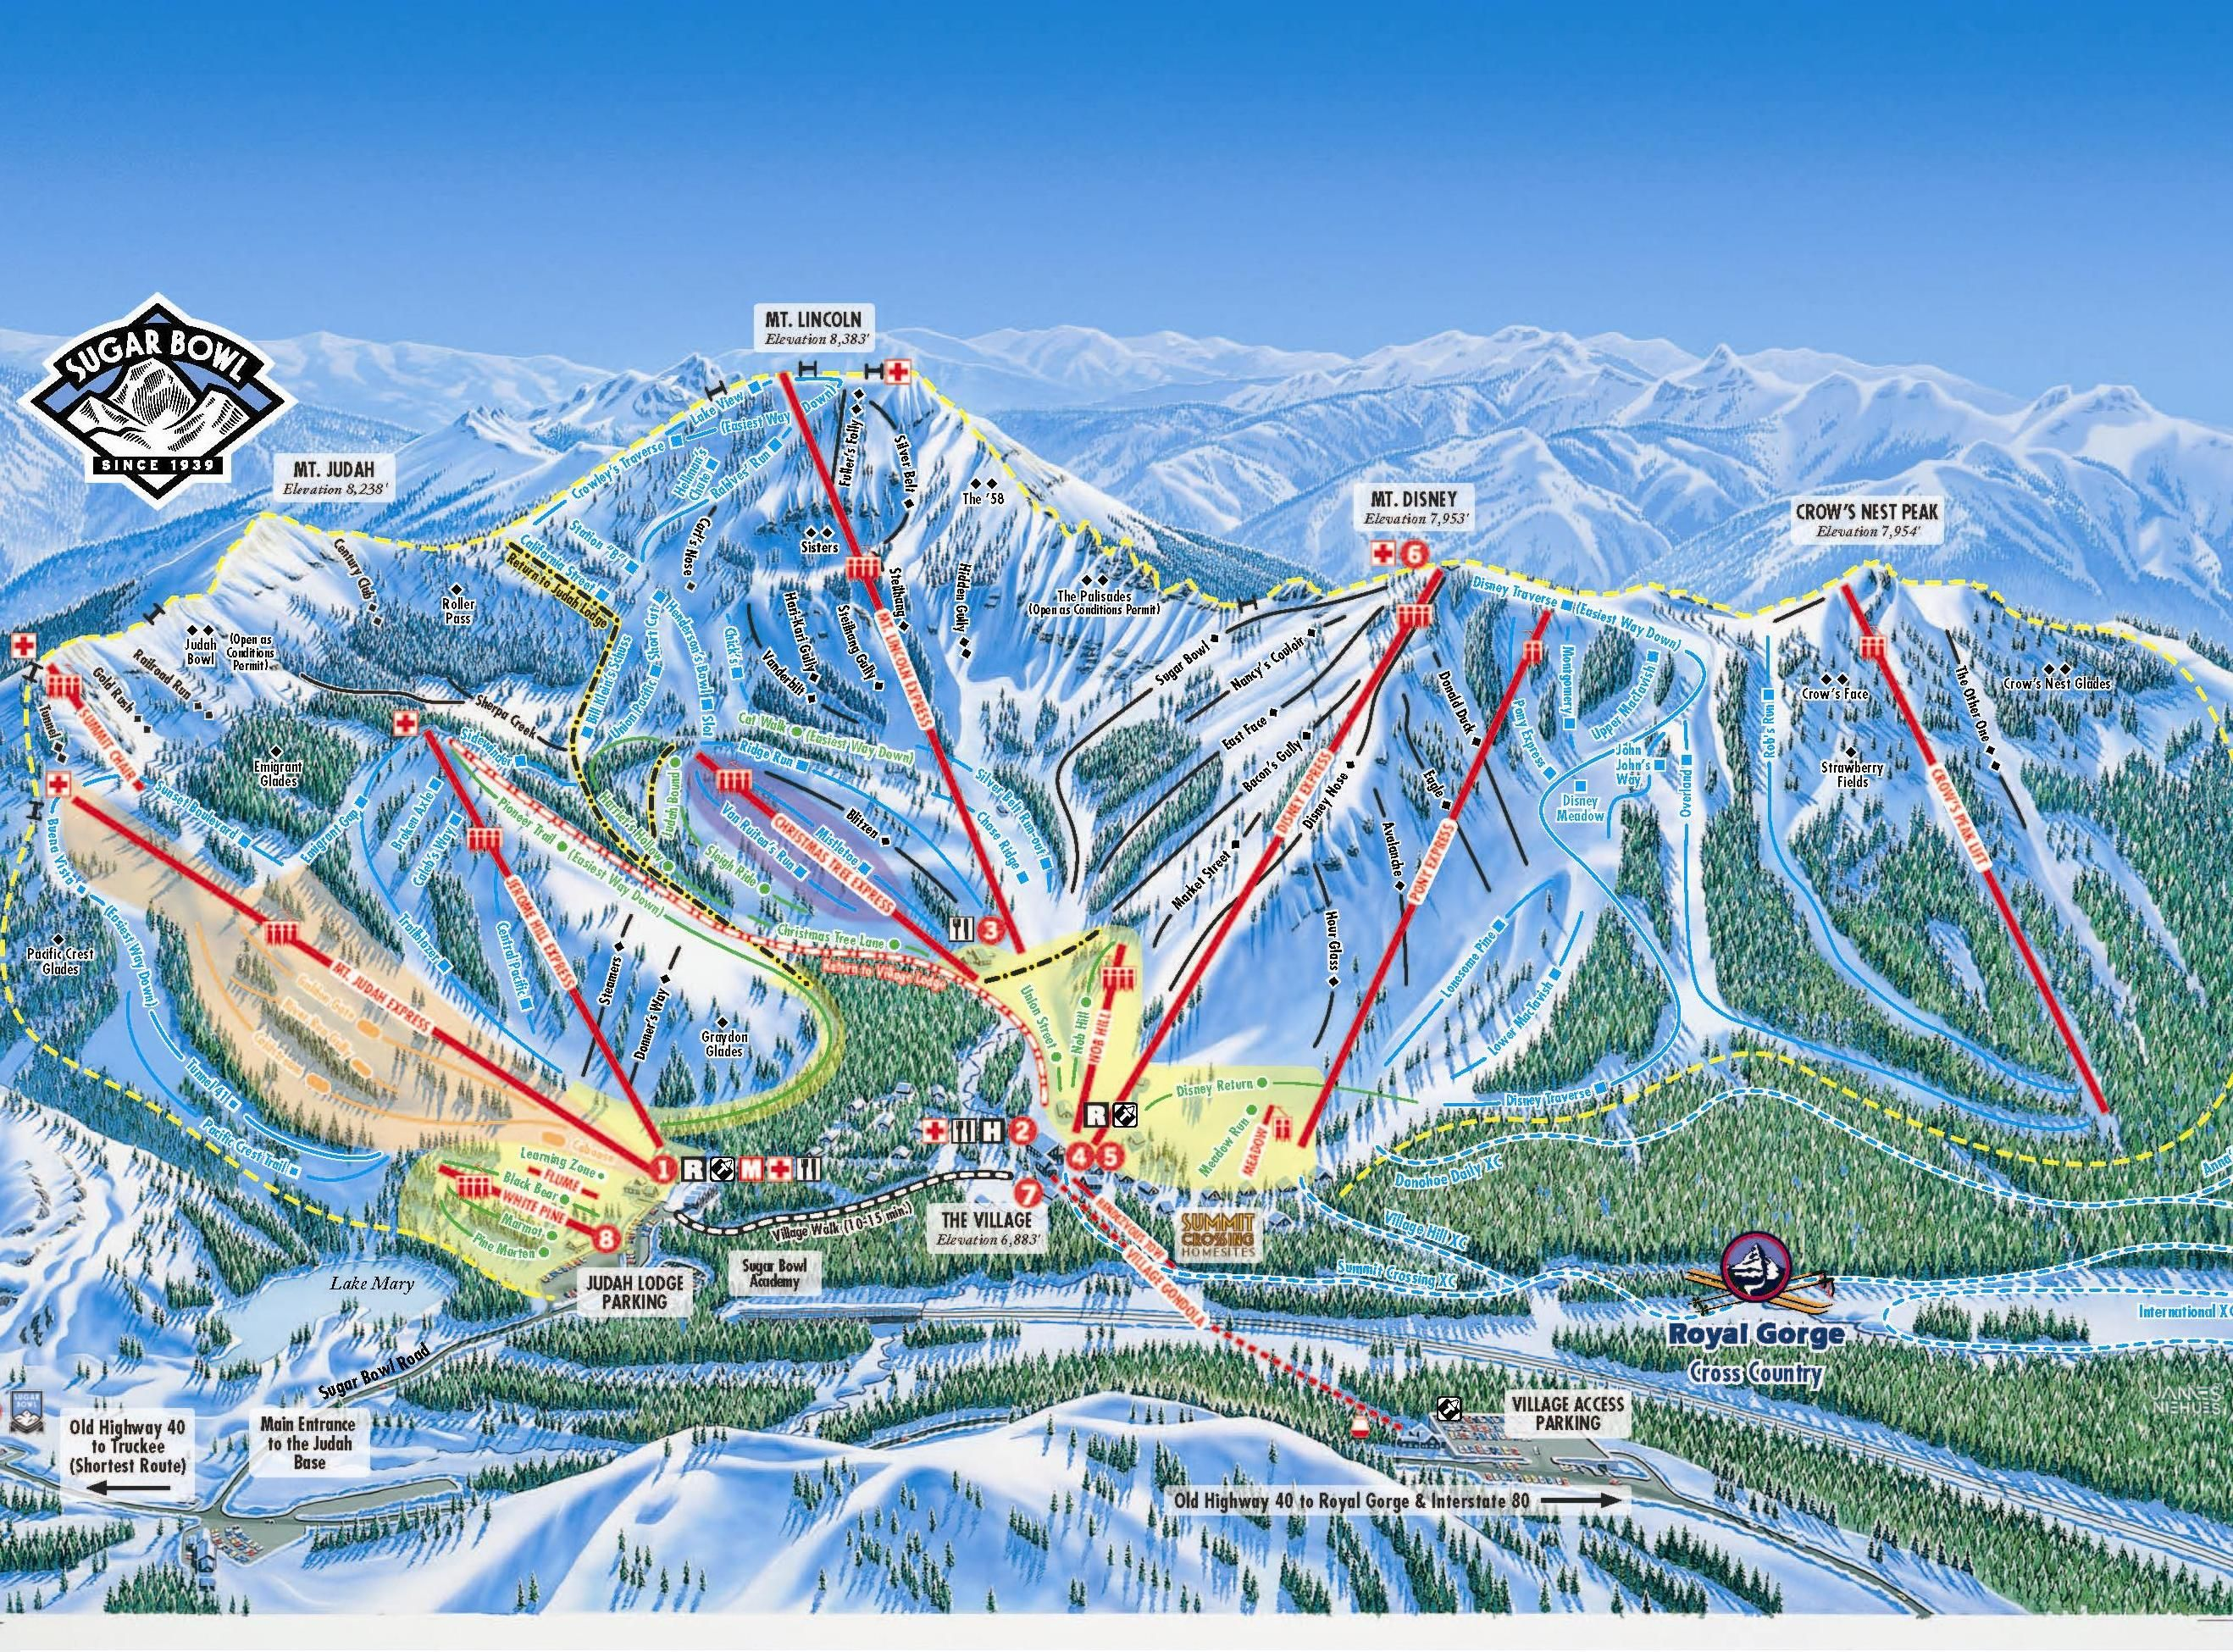 sugar bowl resort map | take me there in 2019 | skiing, snowboarding